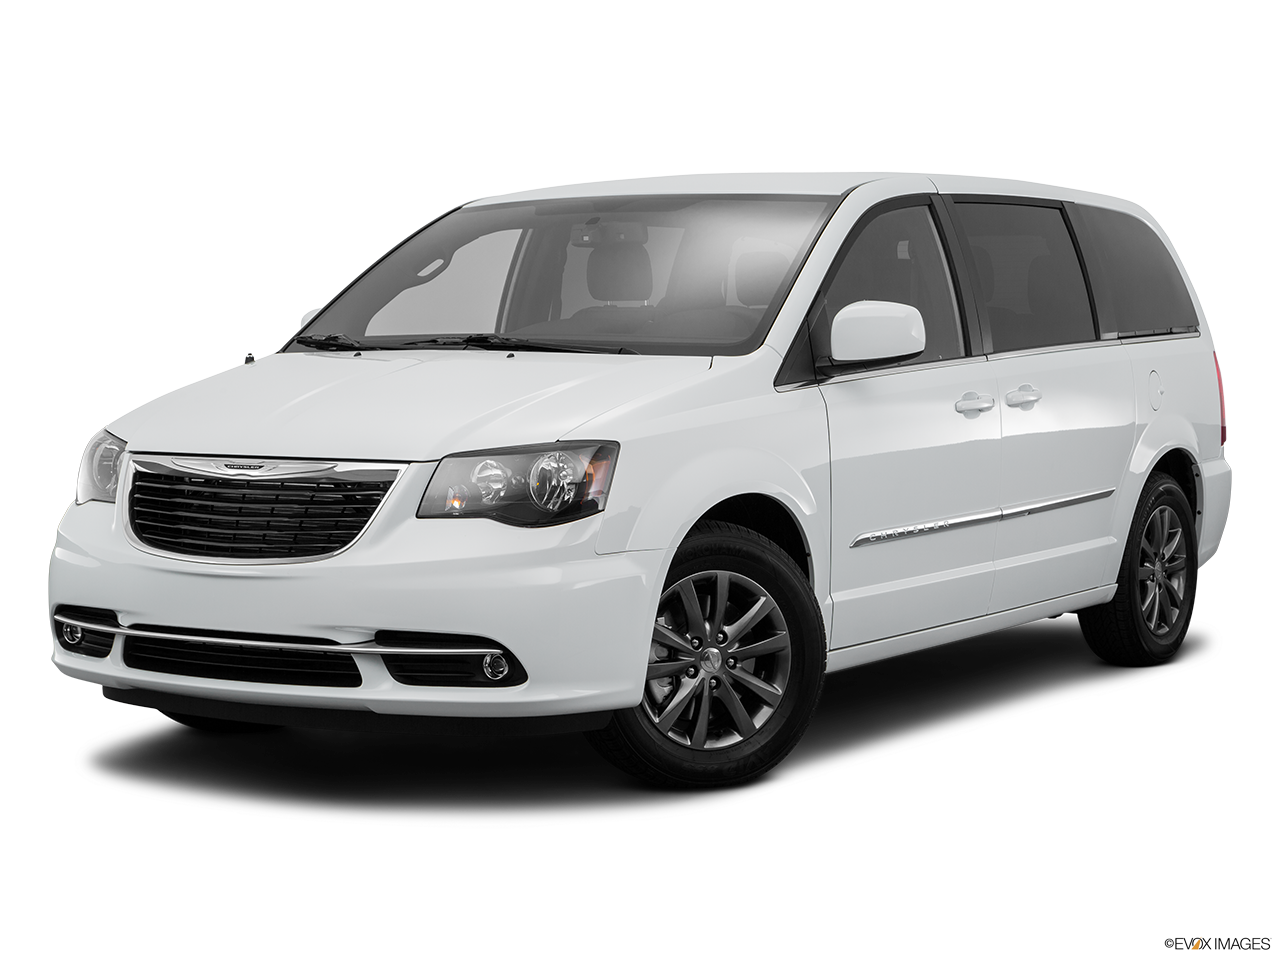 Test Drive A 2016 Chrysler Town & Country  at Arrigo Of Sawgrass in Tamarac